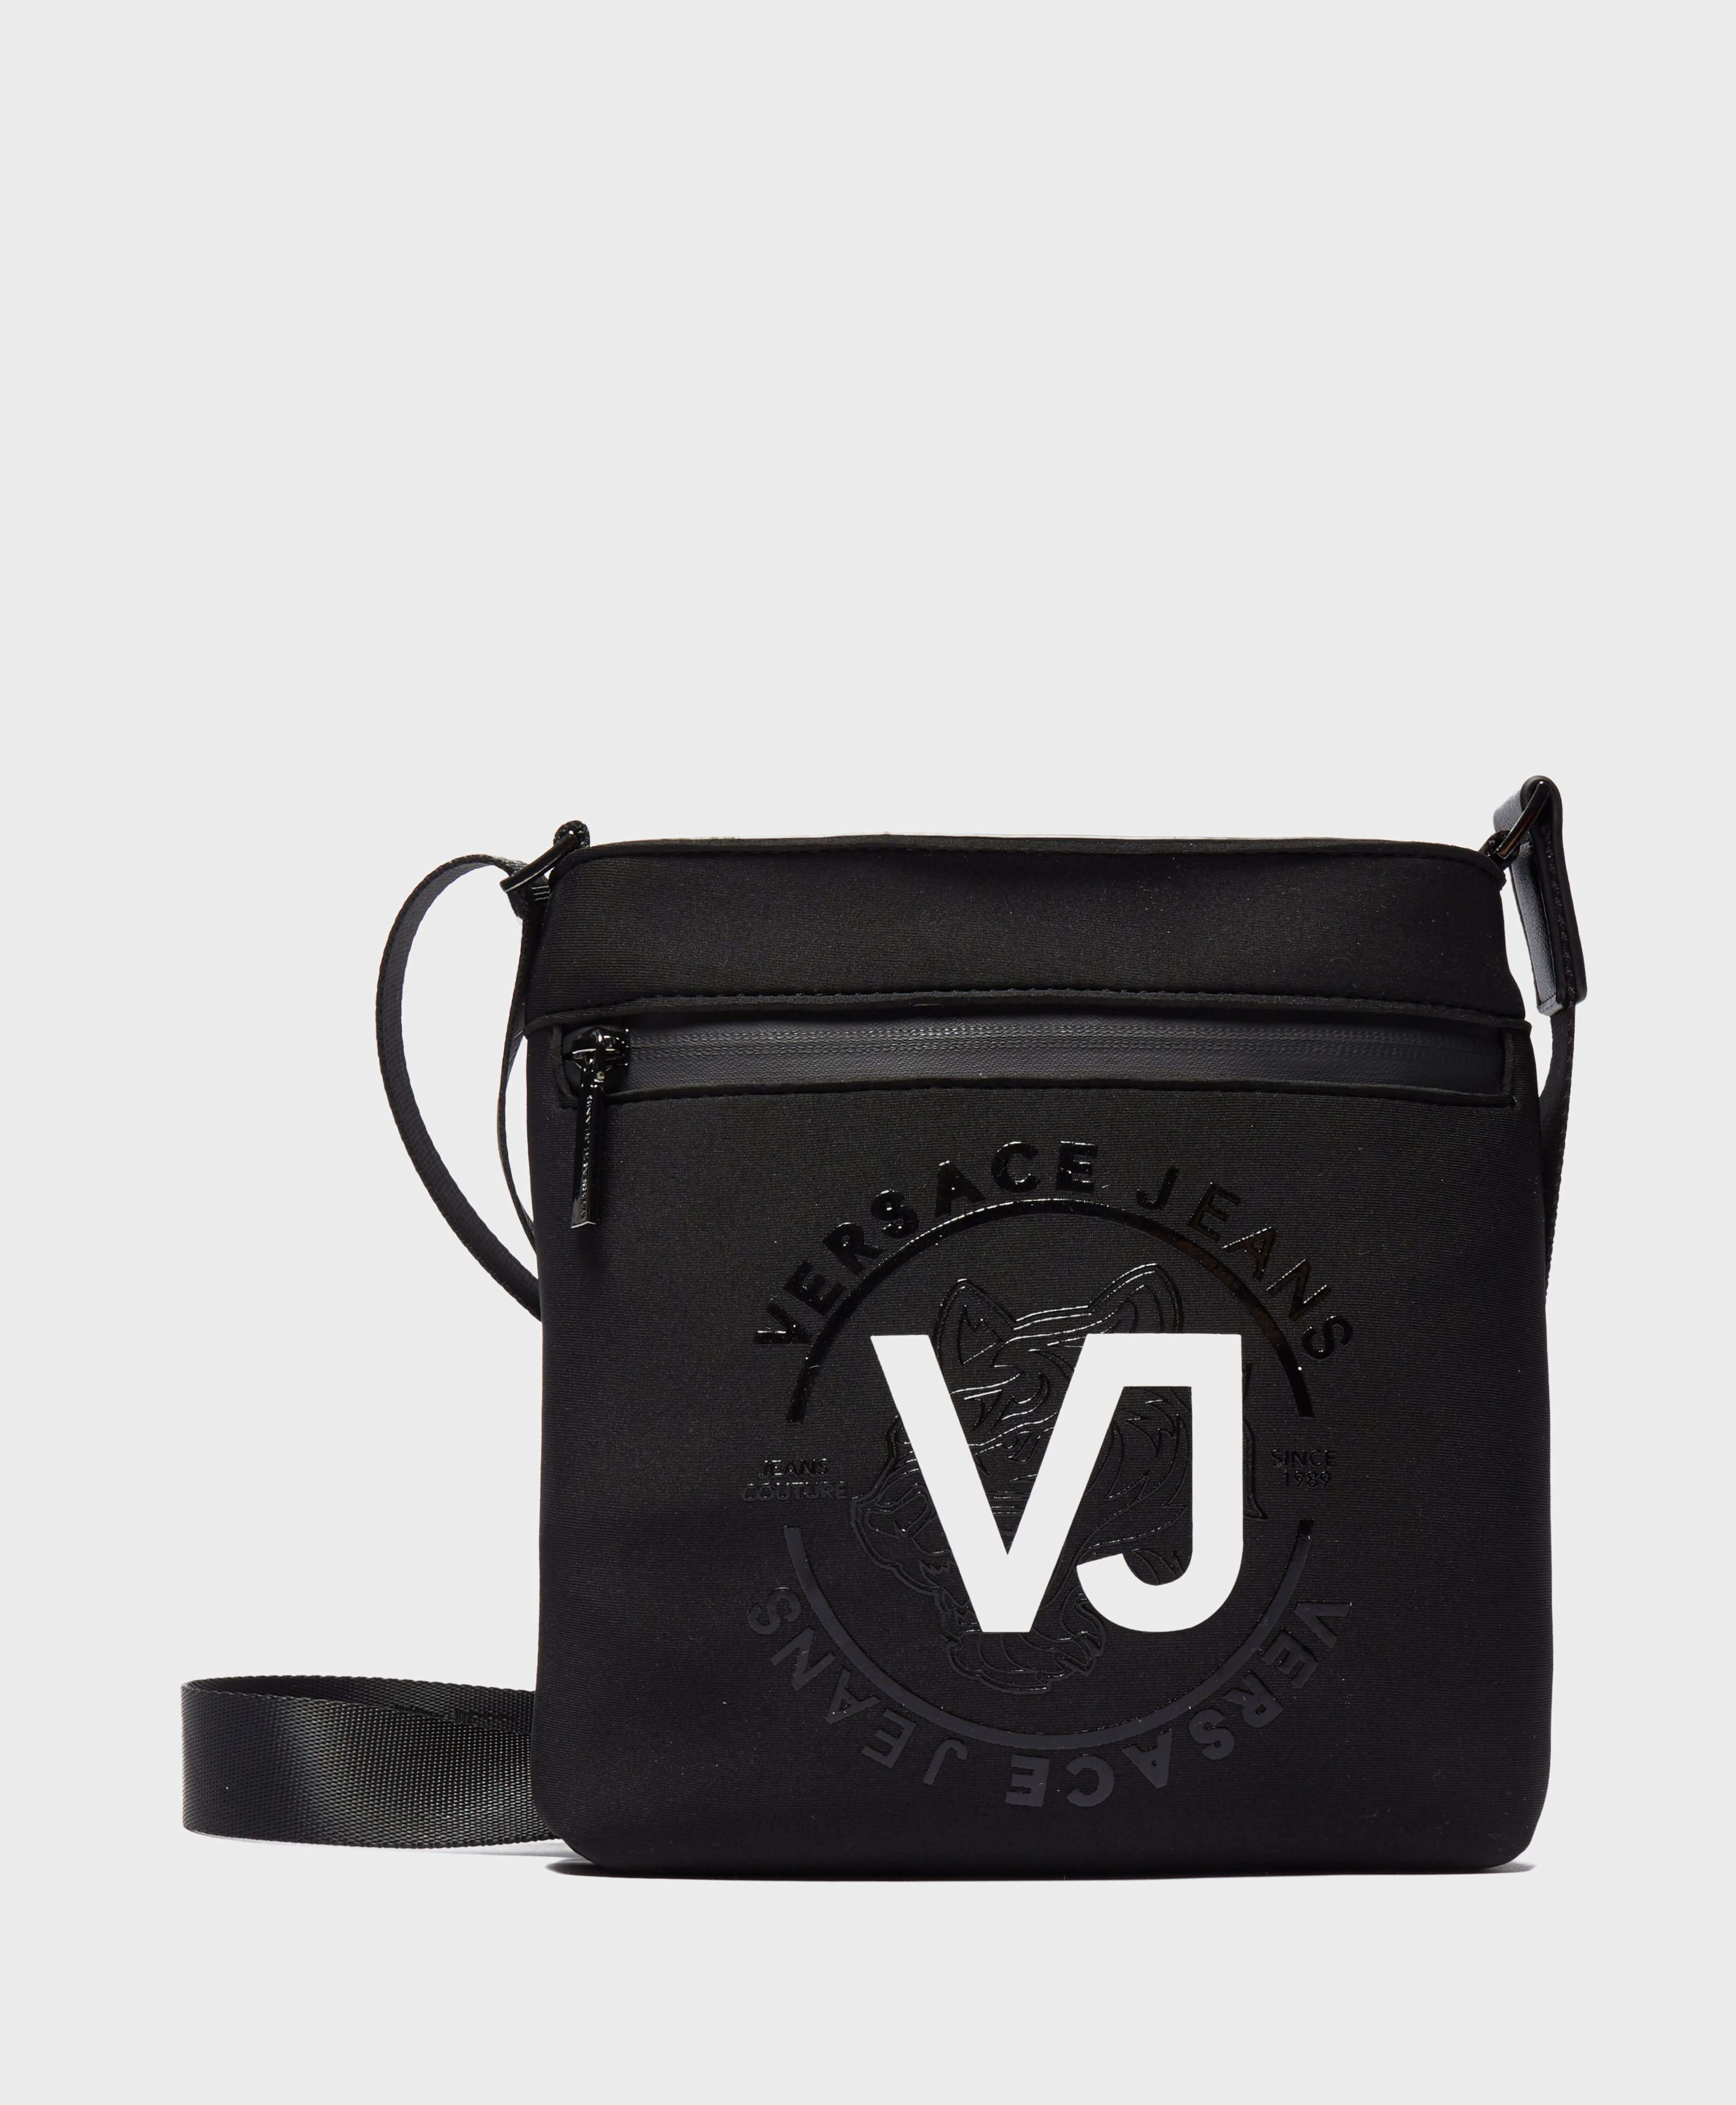 Versace Jeans Neo Print Small Item Bag